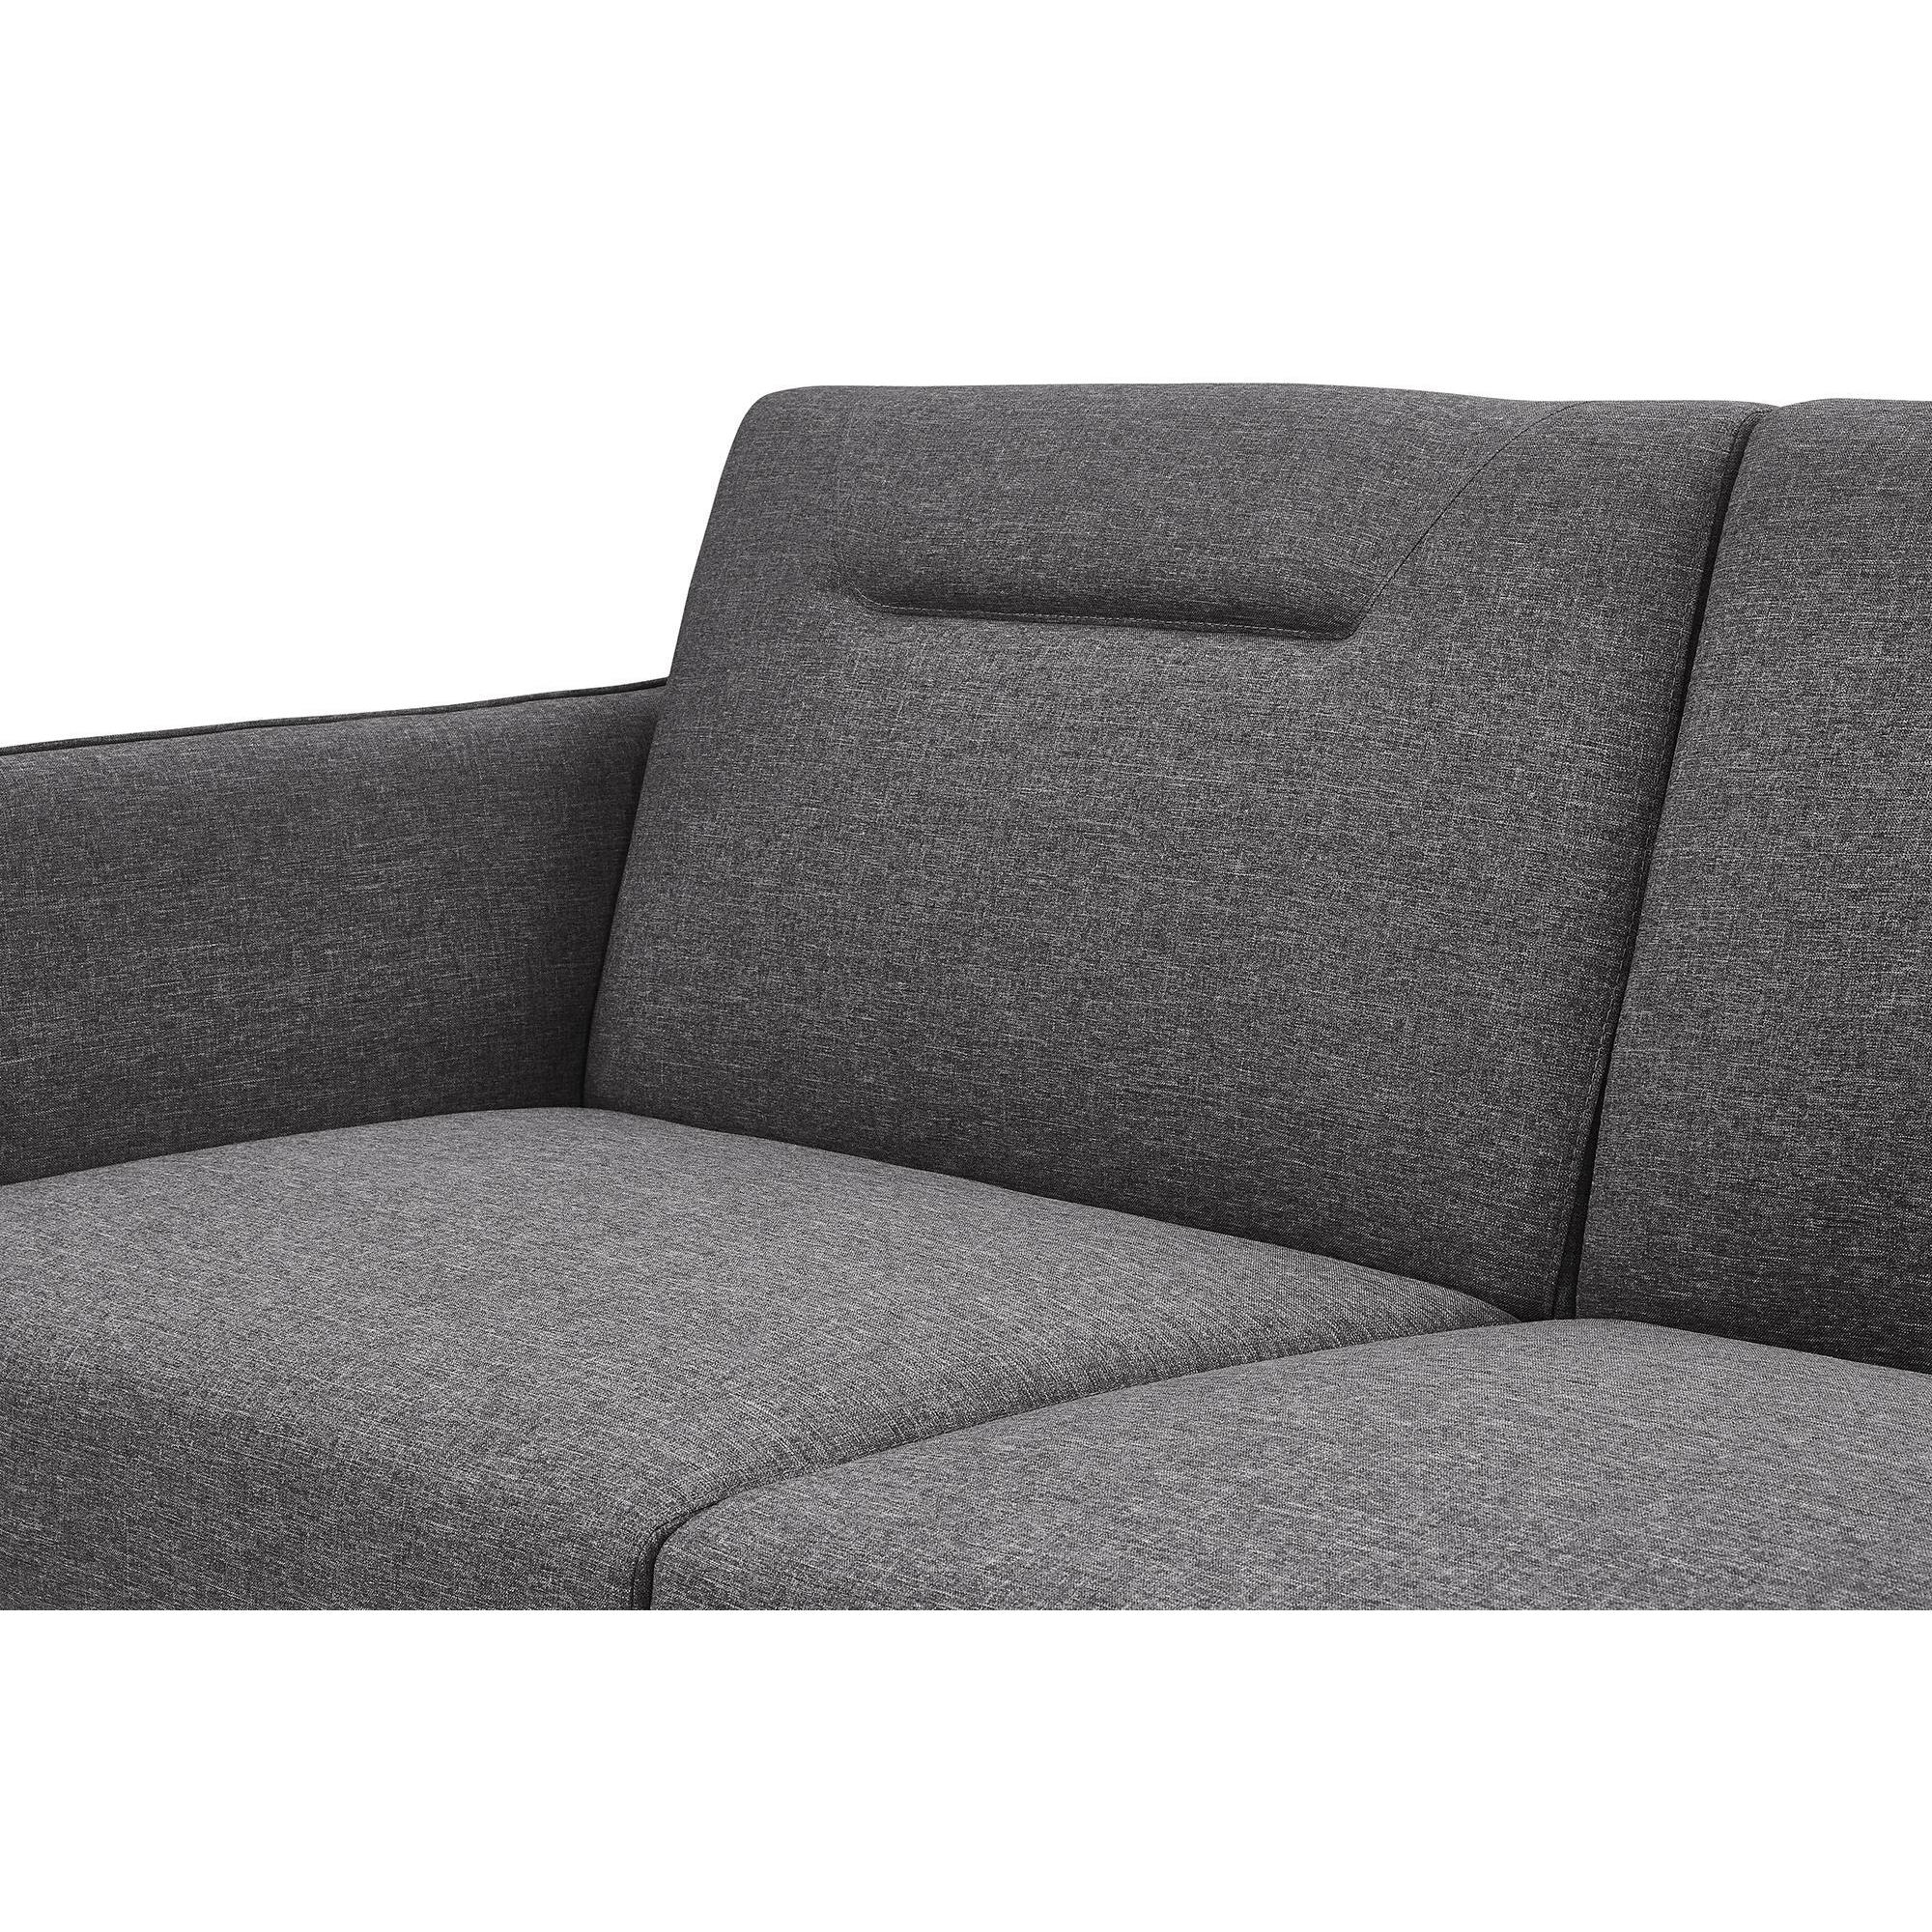 DHP Brent Linen Futon & Chaise Free Shipping Today Overstock